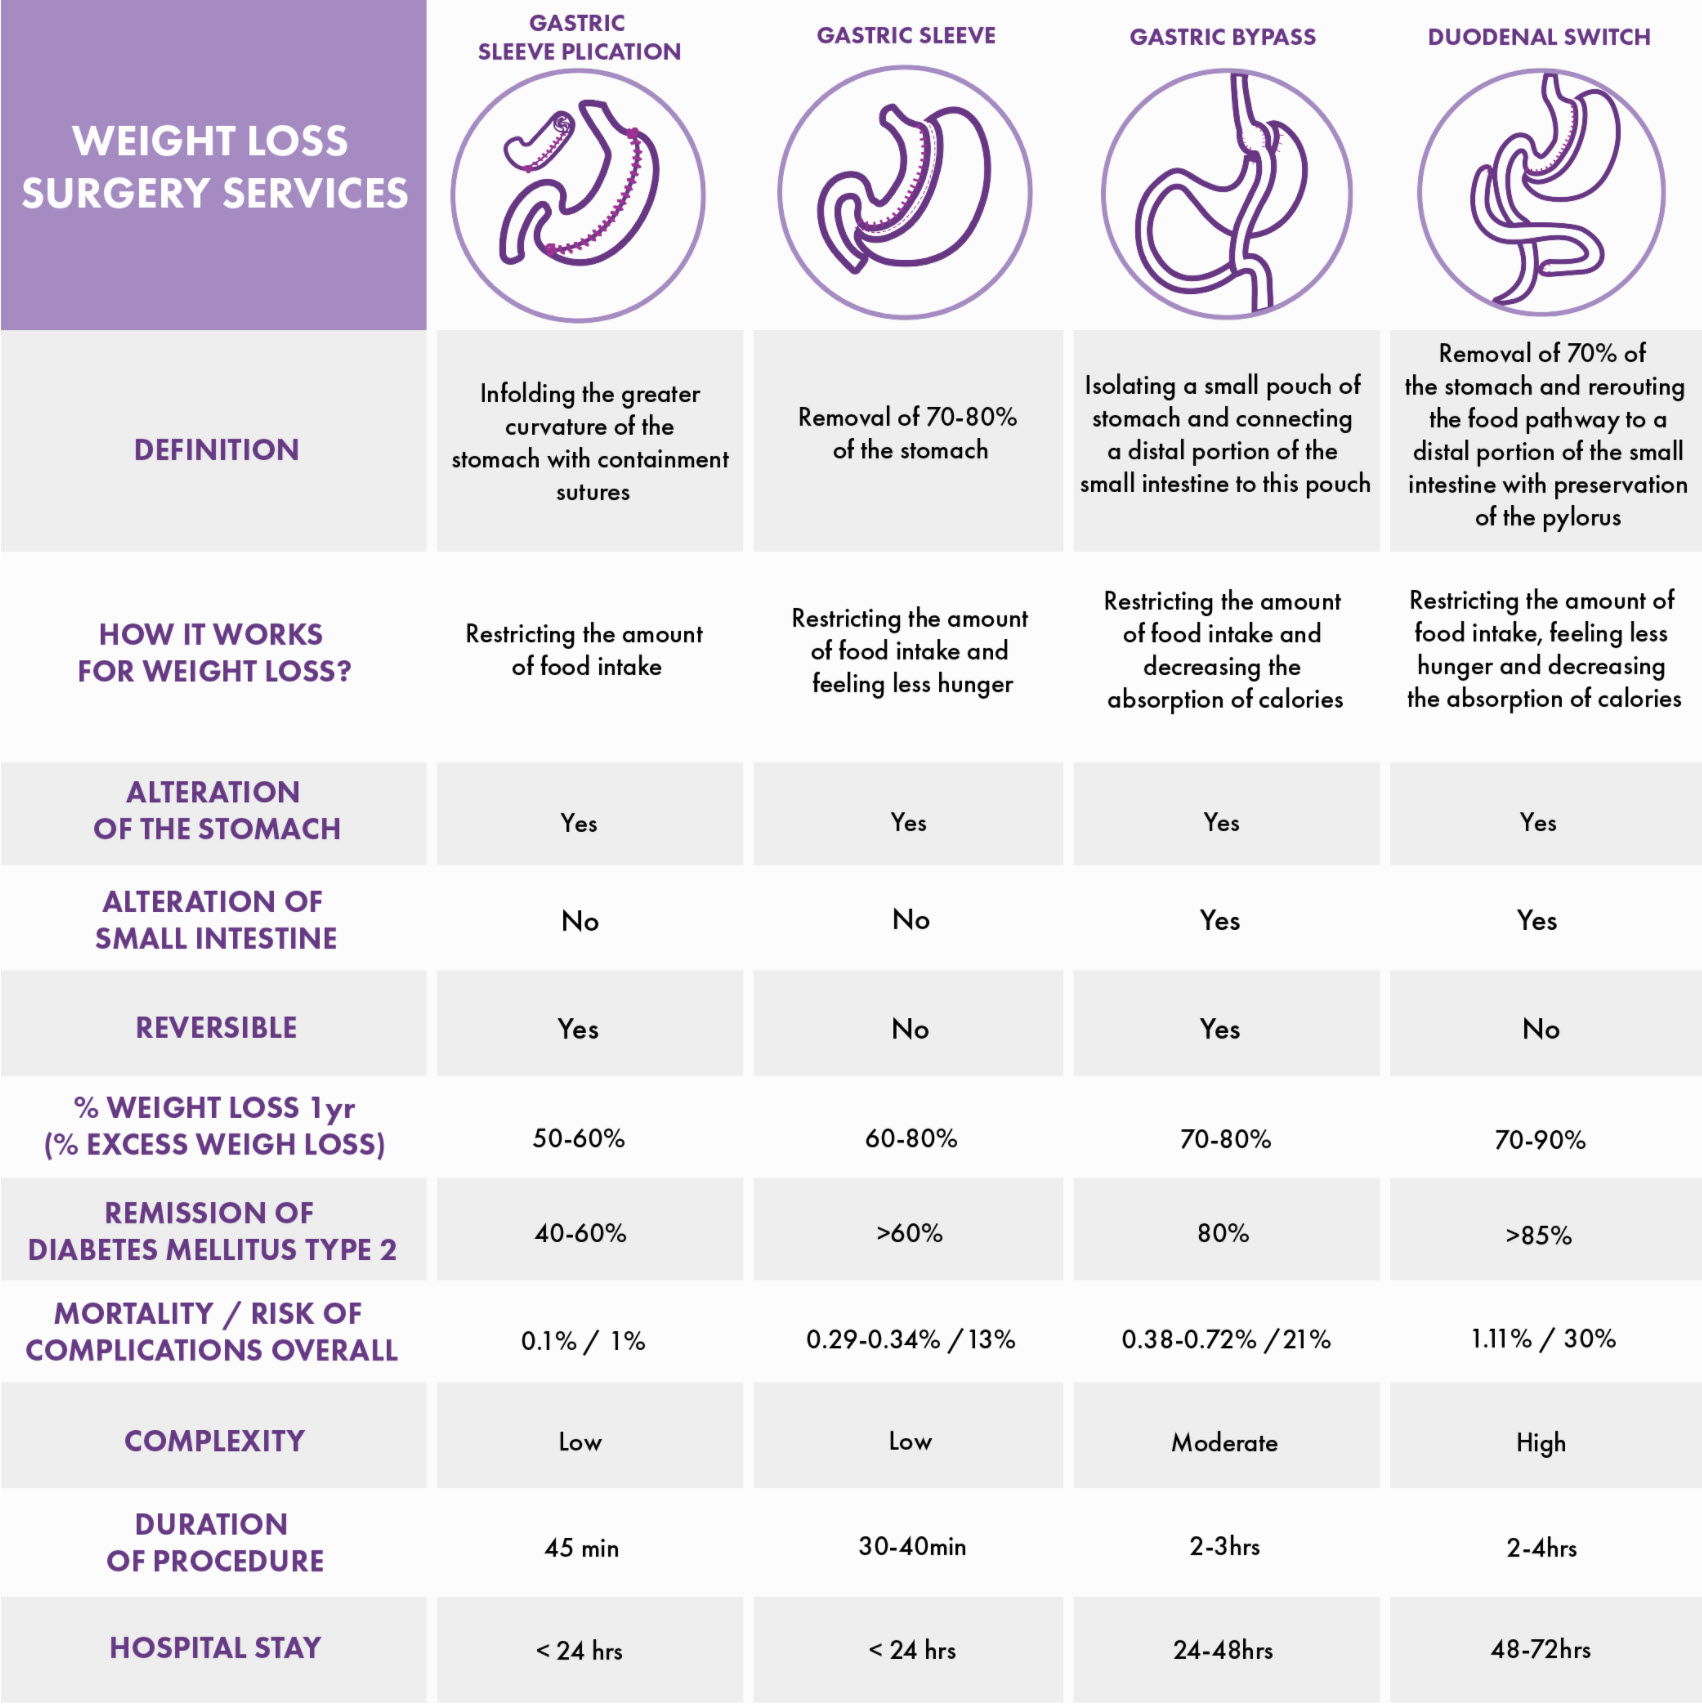 weight loss surgery comparison chart